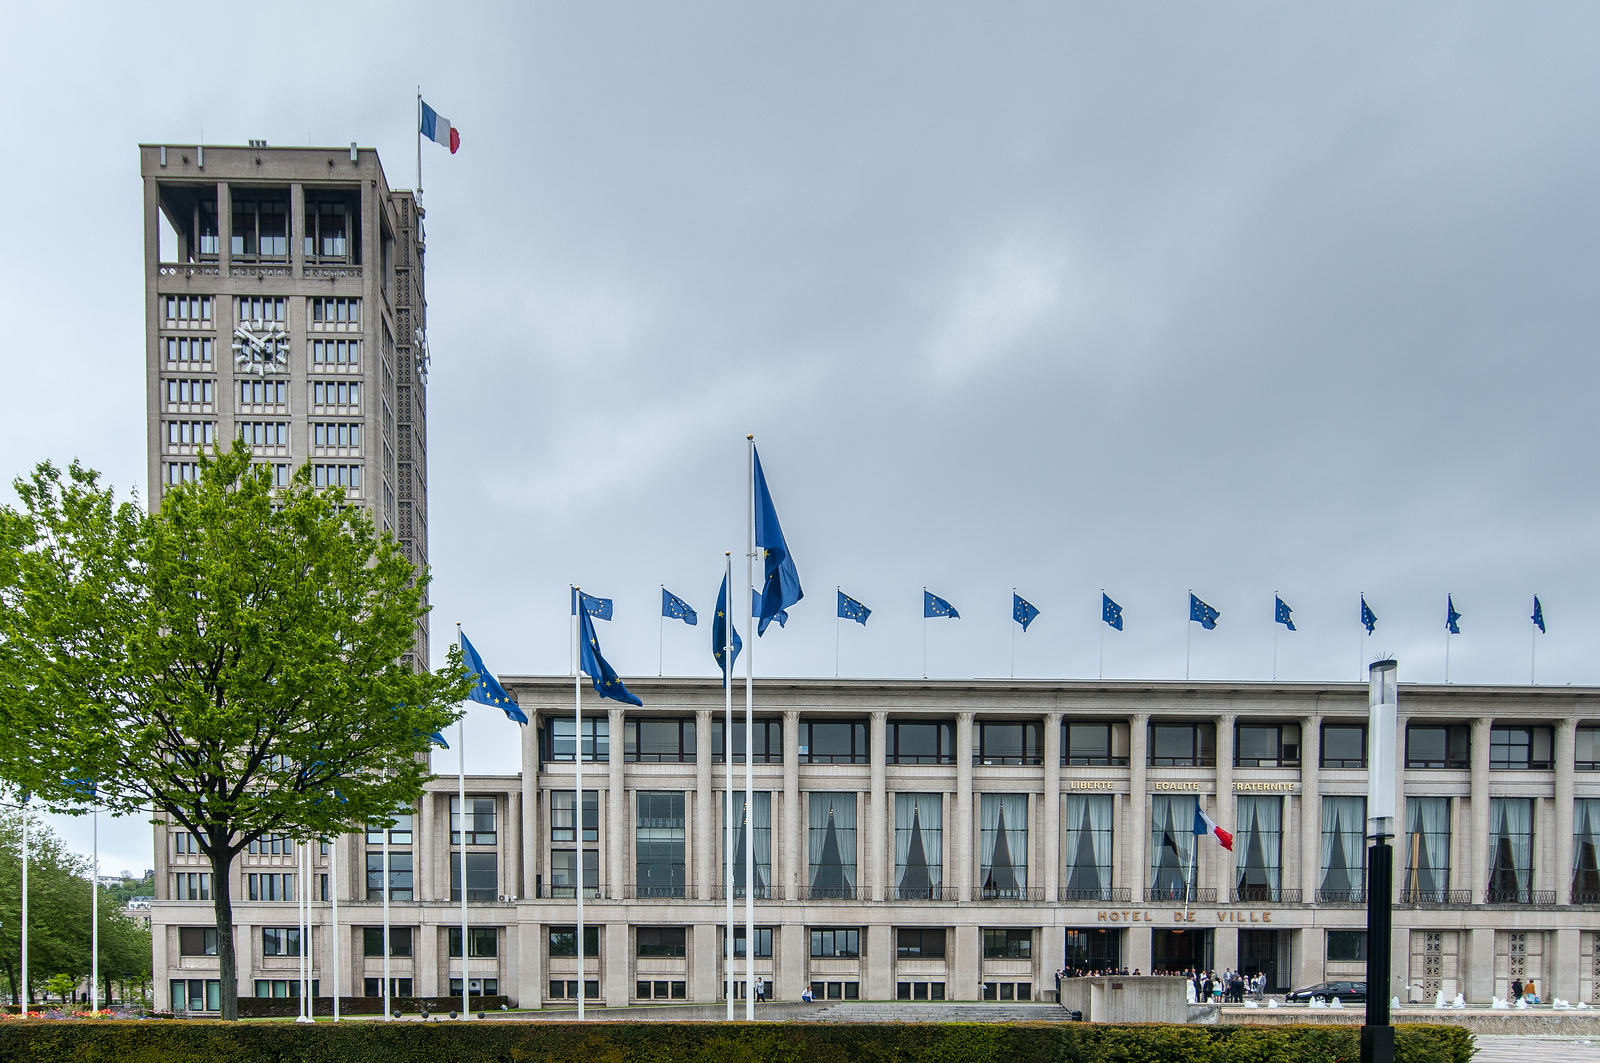 Le Havre, the City Rebuilt by Auguste Perret UNESCO World Heritage Site